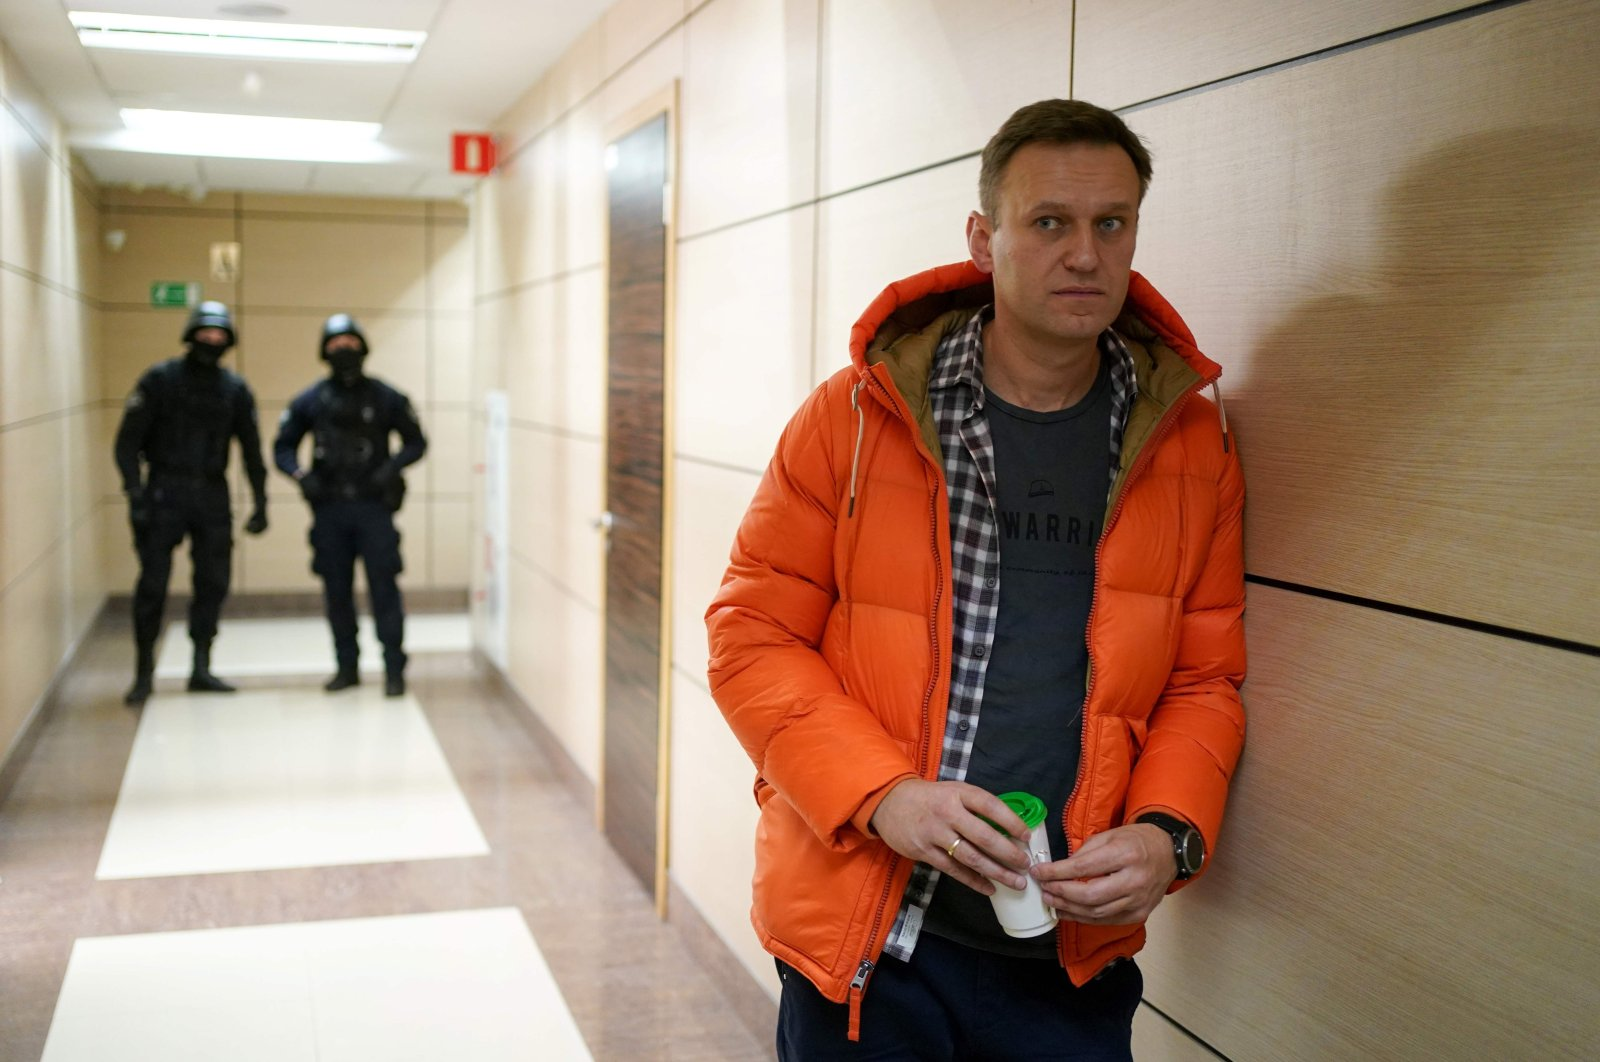 This file photo shows Russian opposition leader Alexei Navalny standing near law enforcement agents in a hallway of a business center, which houses the office of his Anti-Corruption Foundation (FBK), in Moscow, Dec. 26, 2019. (AFP Photo)